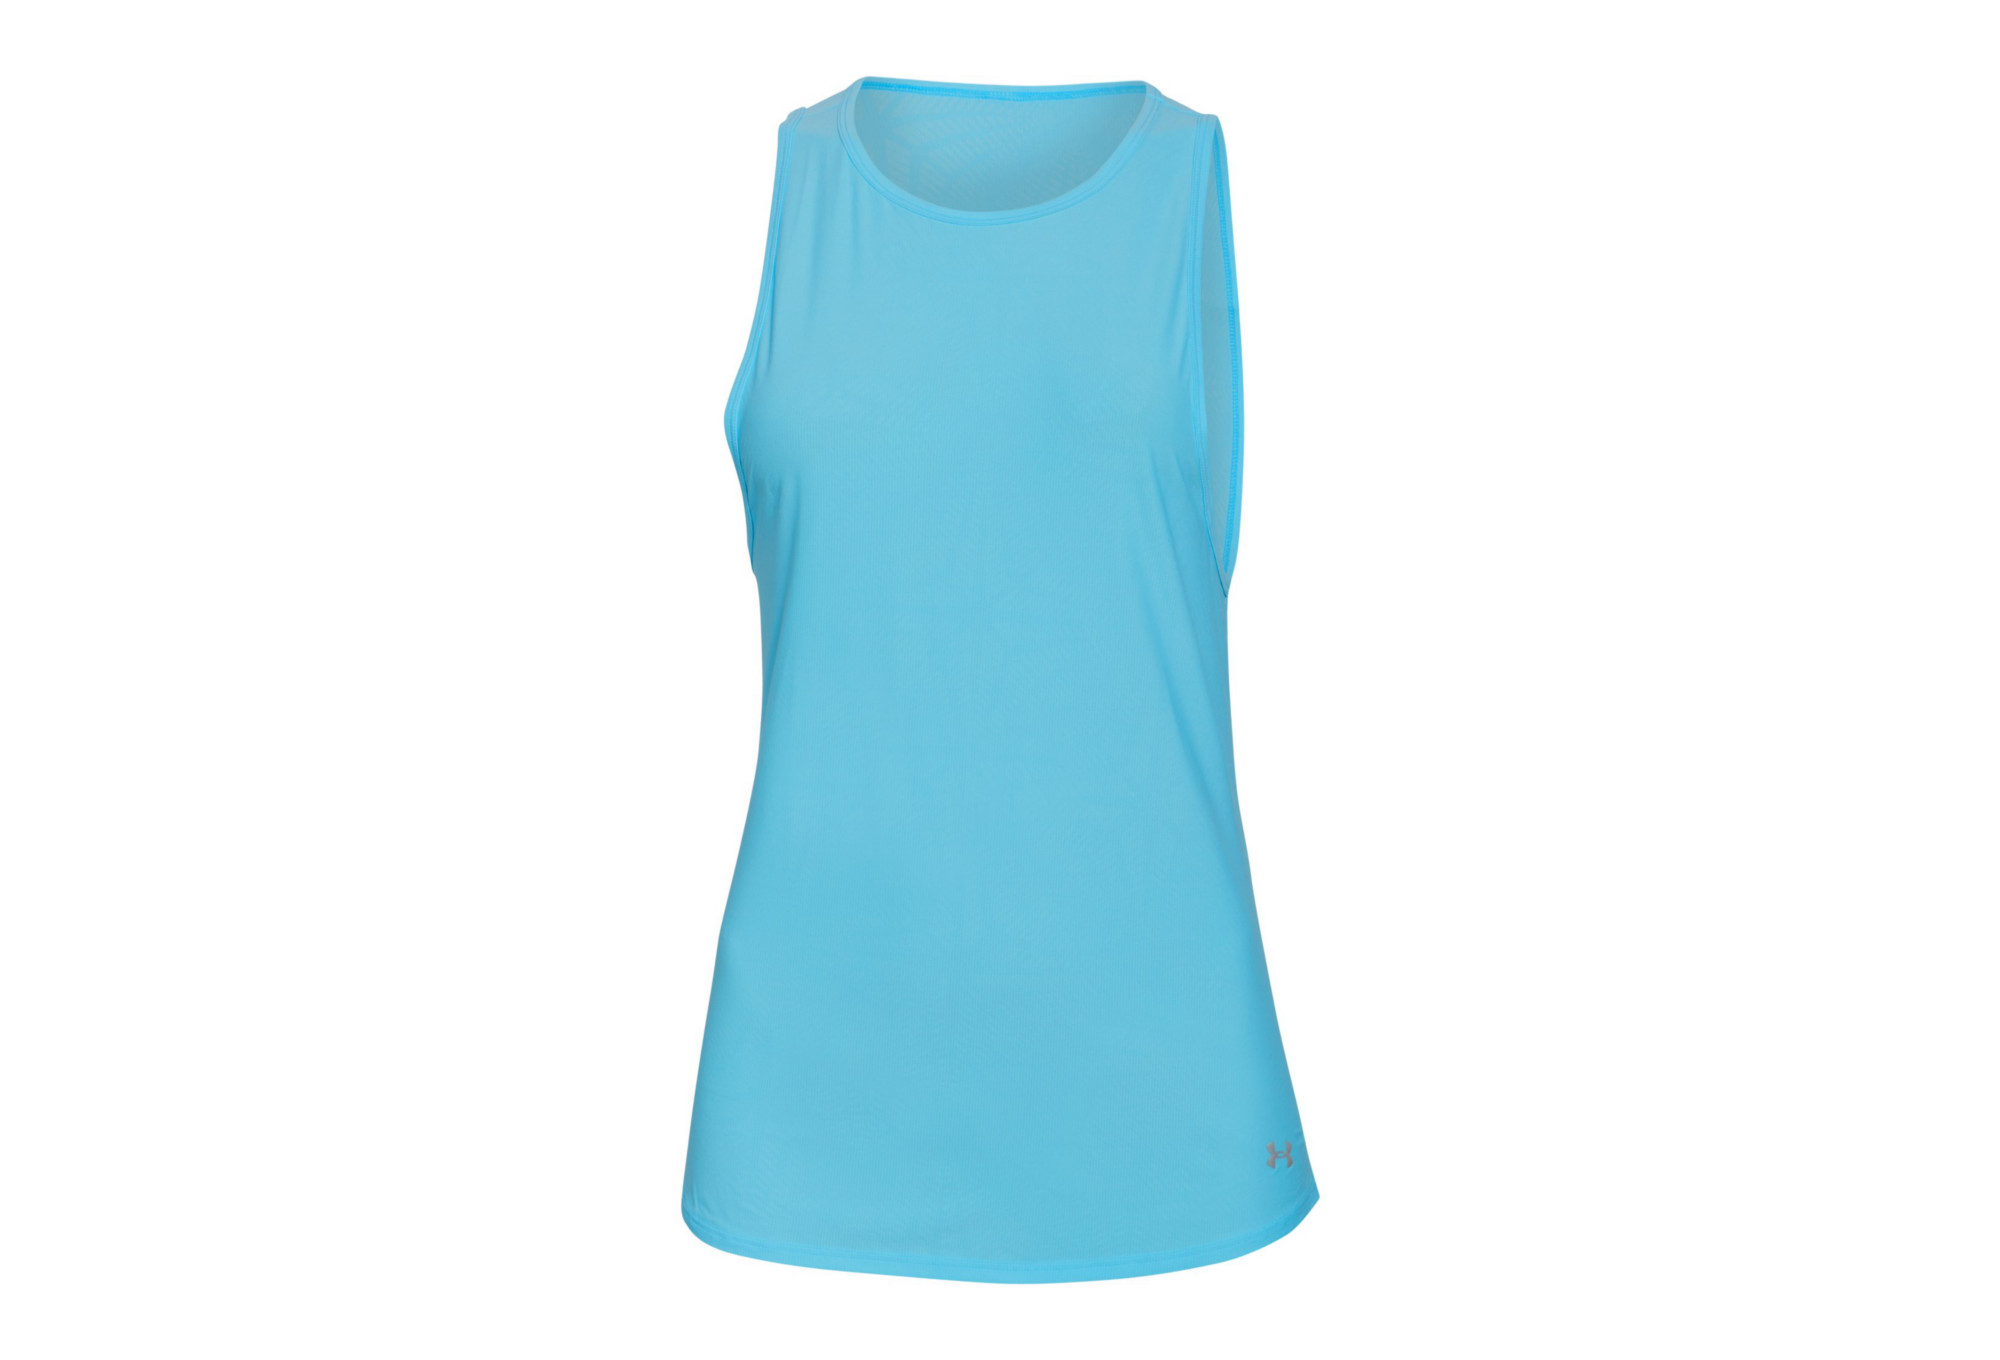 fed6f53f30 UNDER ARMOUR COOLSWITCH RUN Tank Top Light Blue Women